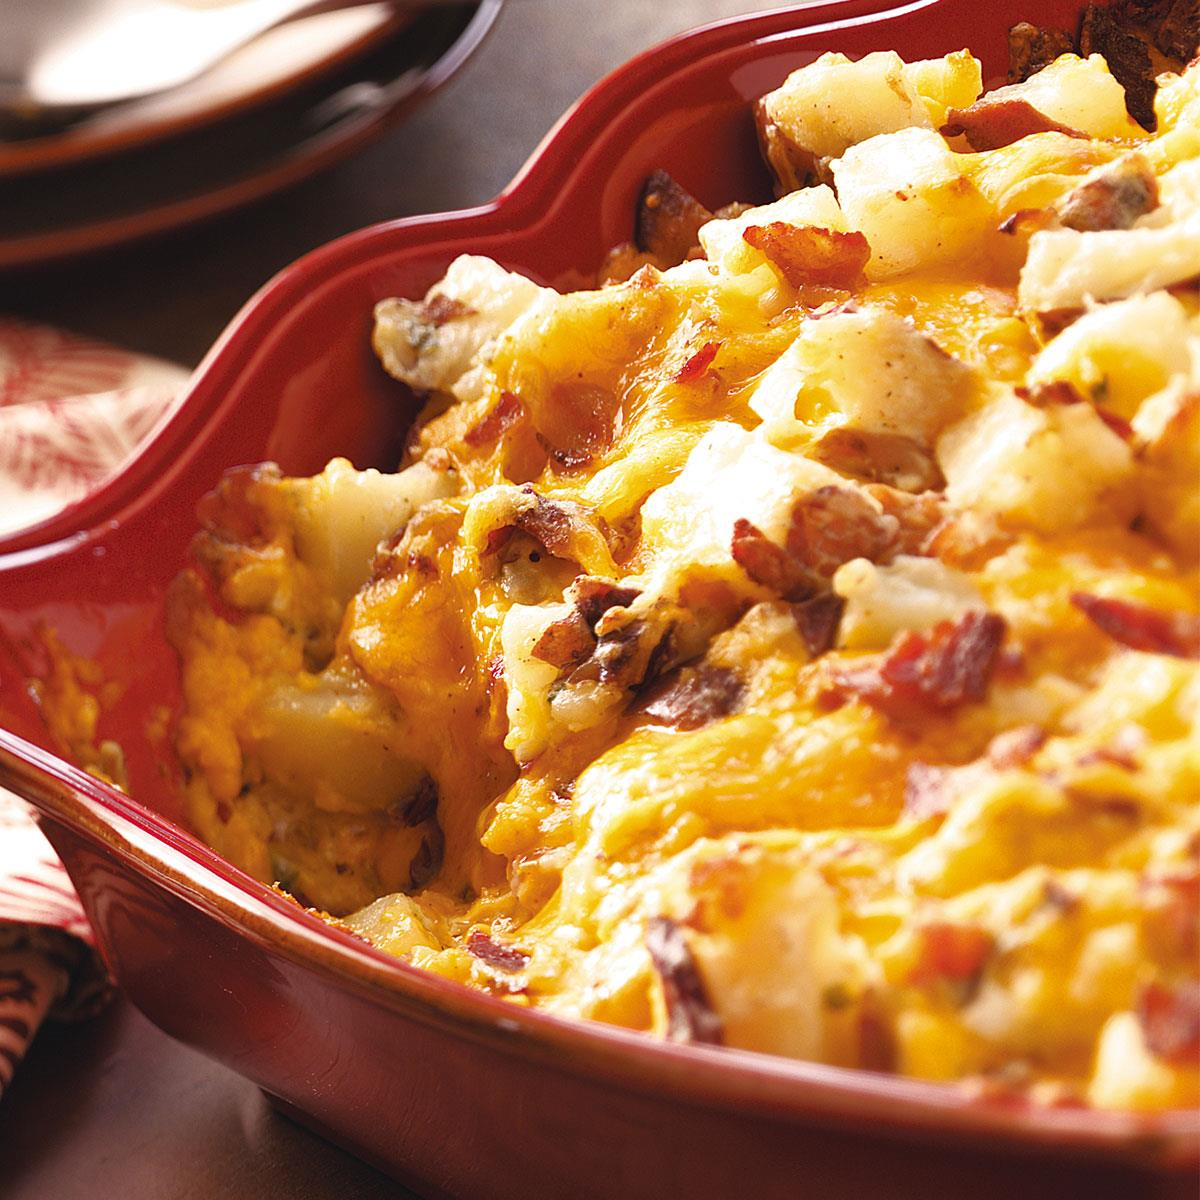 Potatoes in the oven with cheese, mayonnaise and sour cream 88